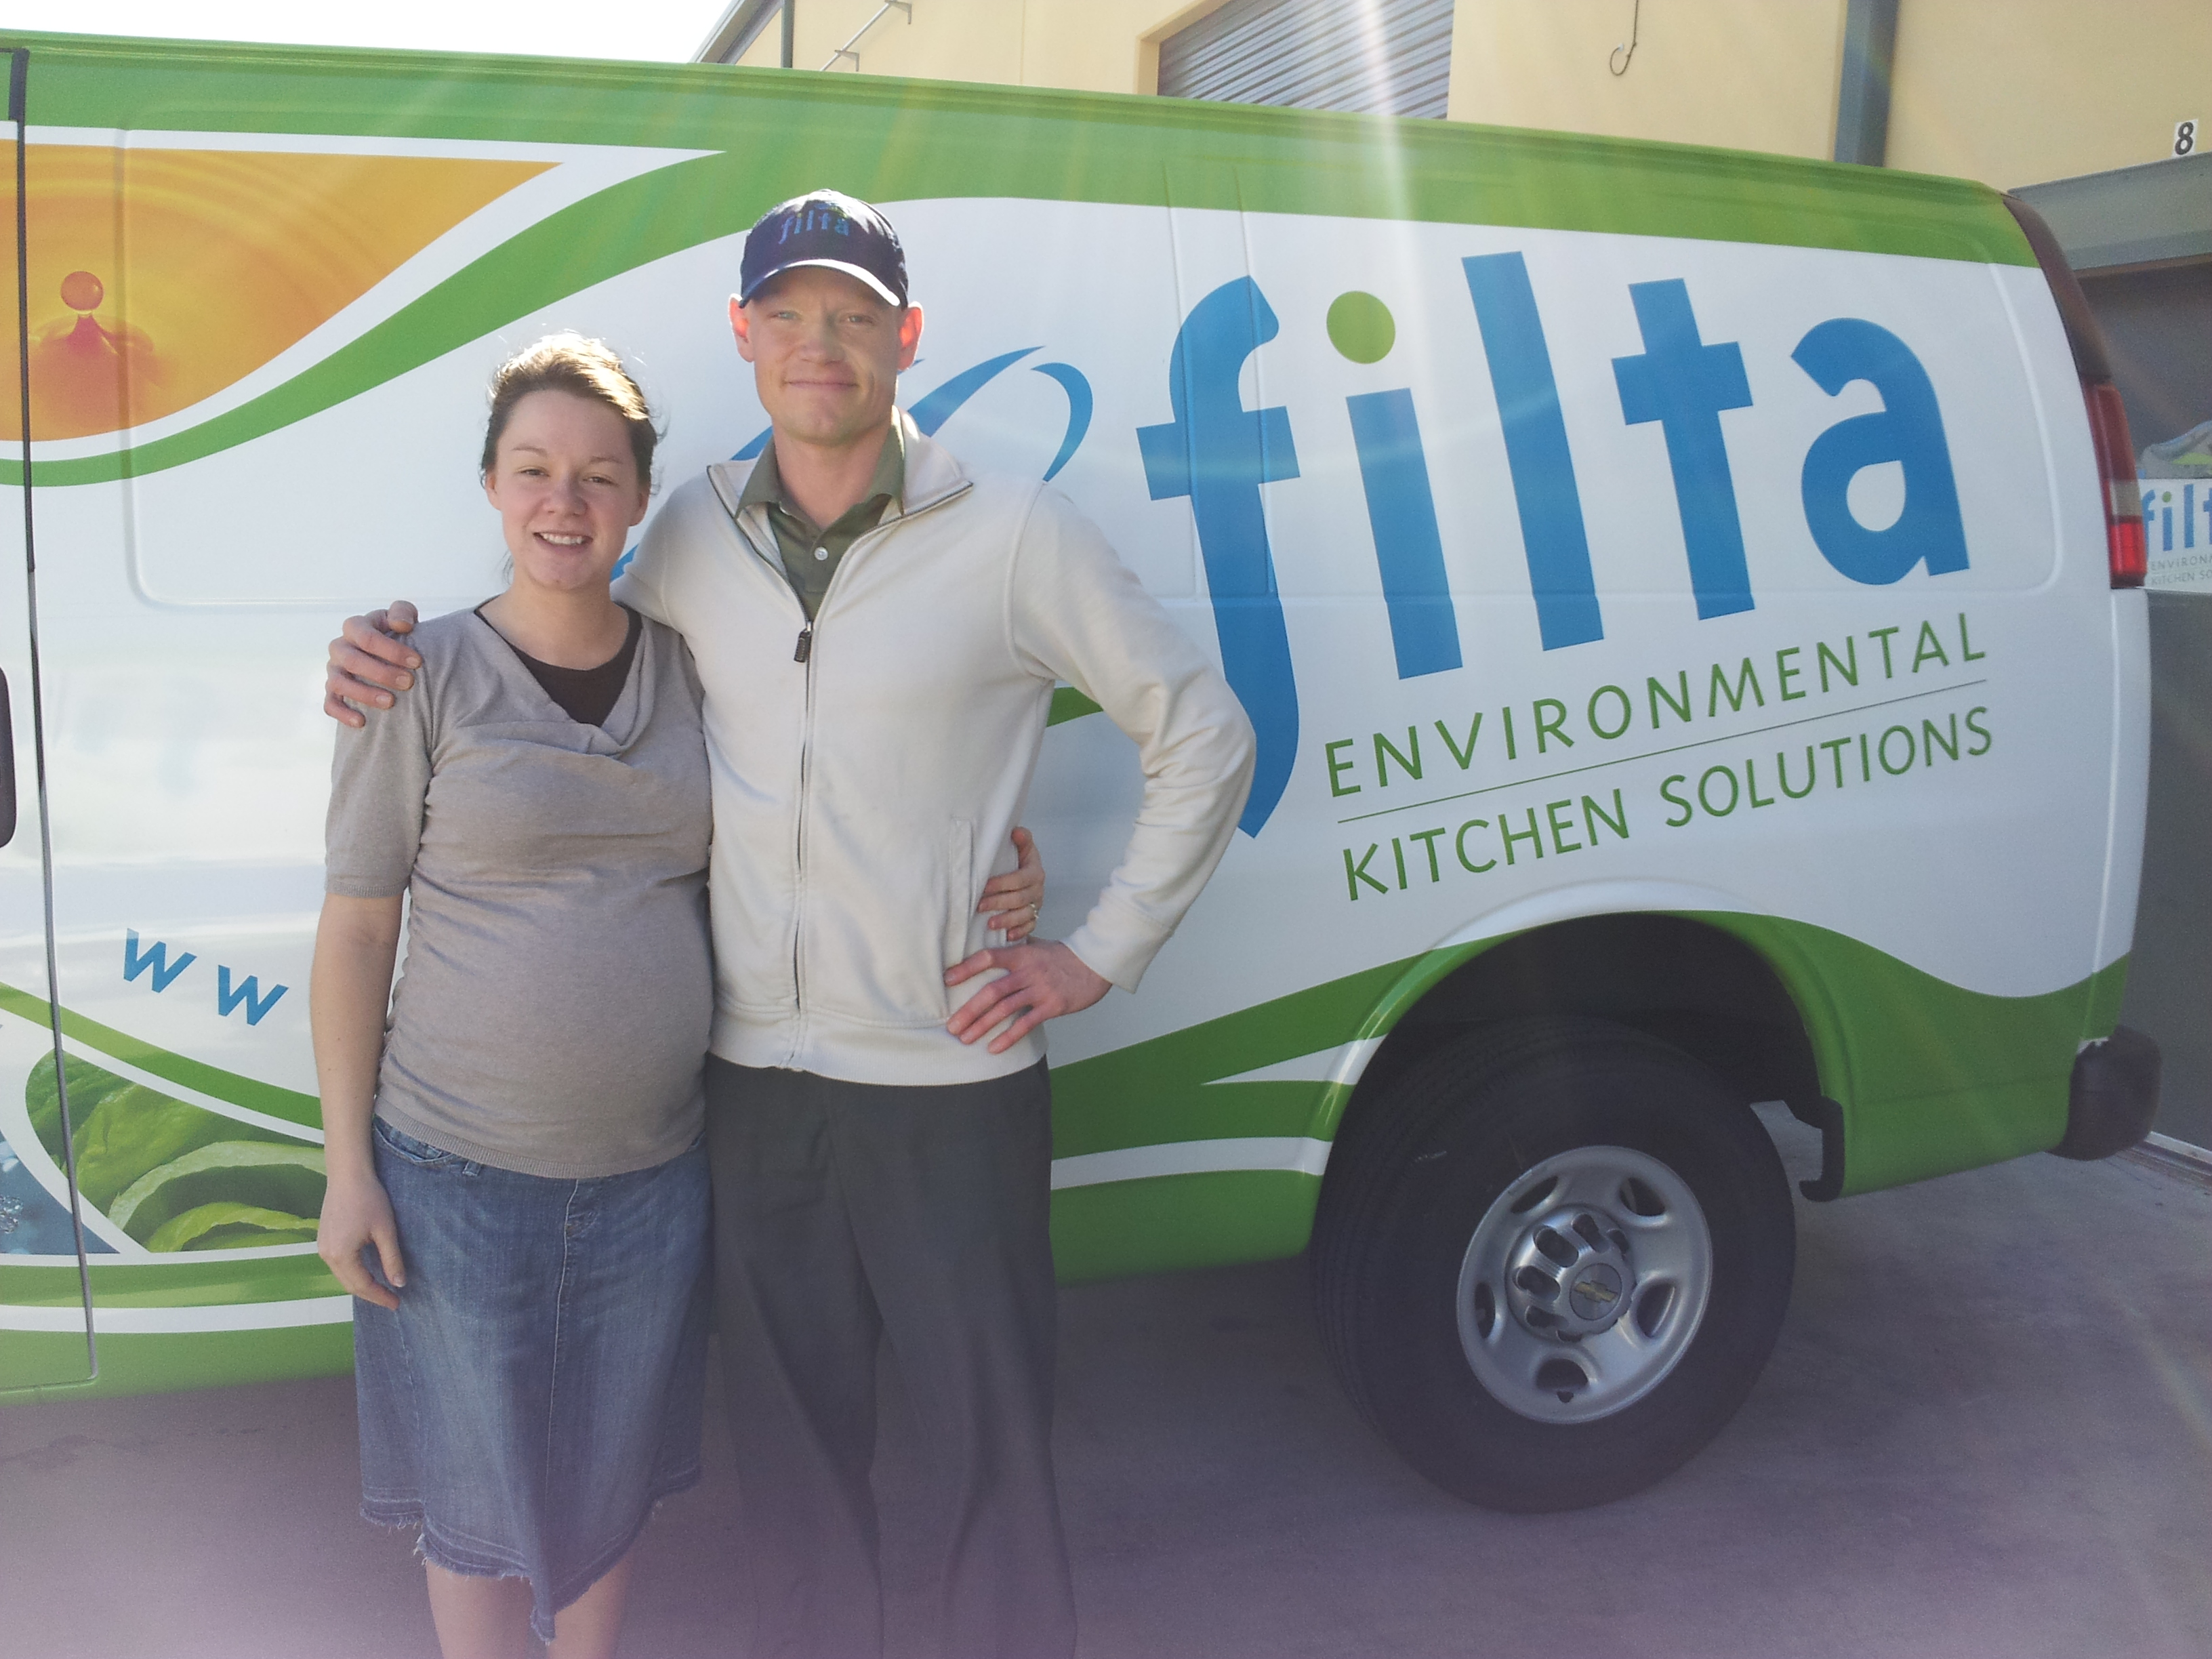 filta environmental kitchen solutions celebrates the expansion of